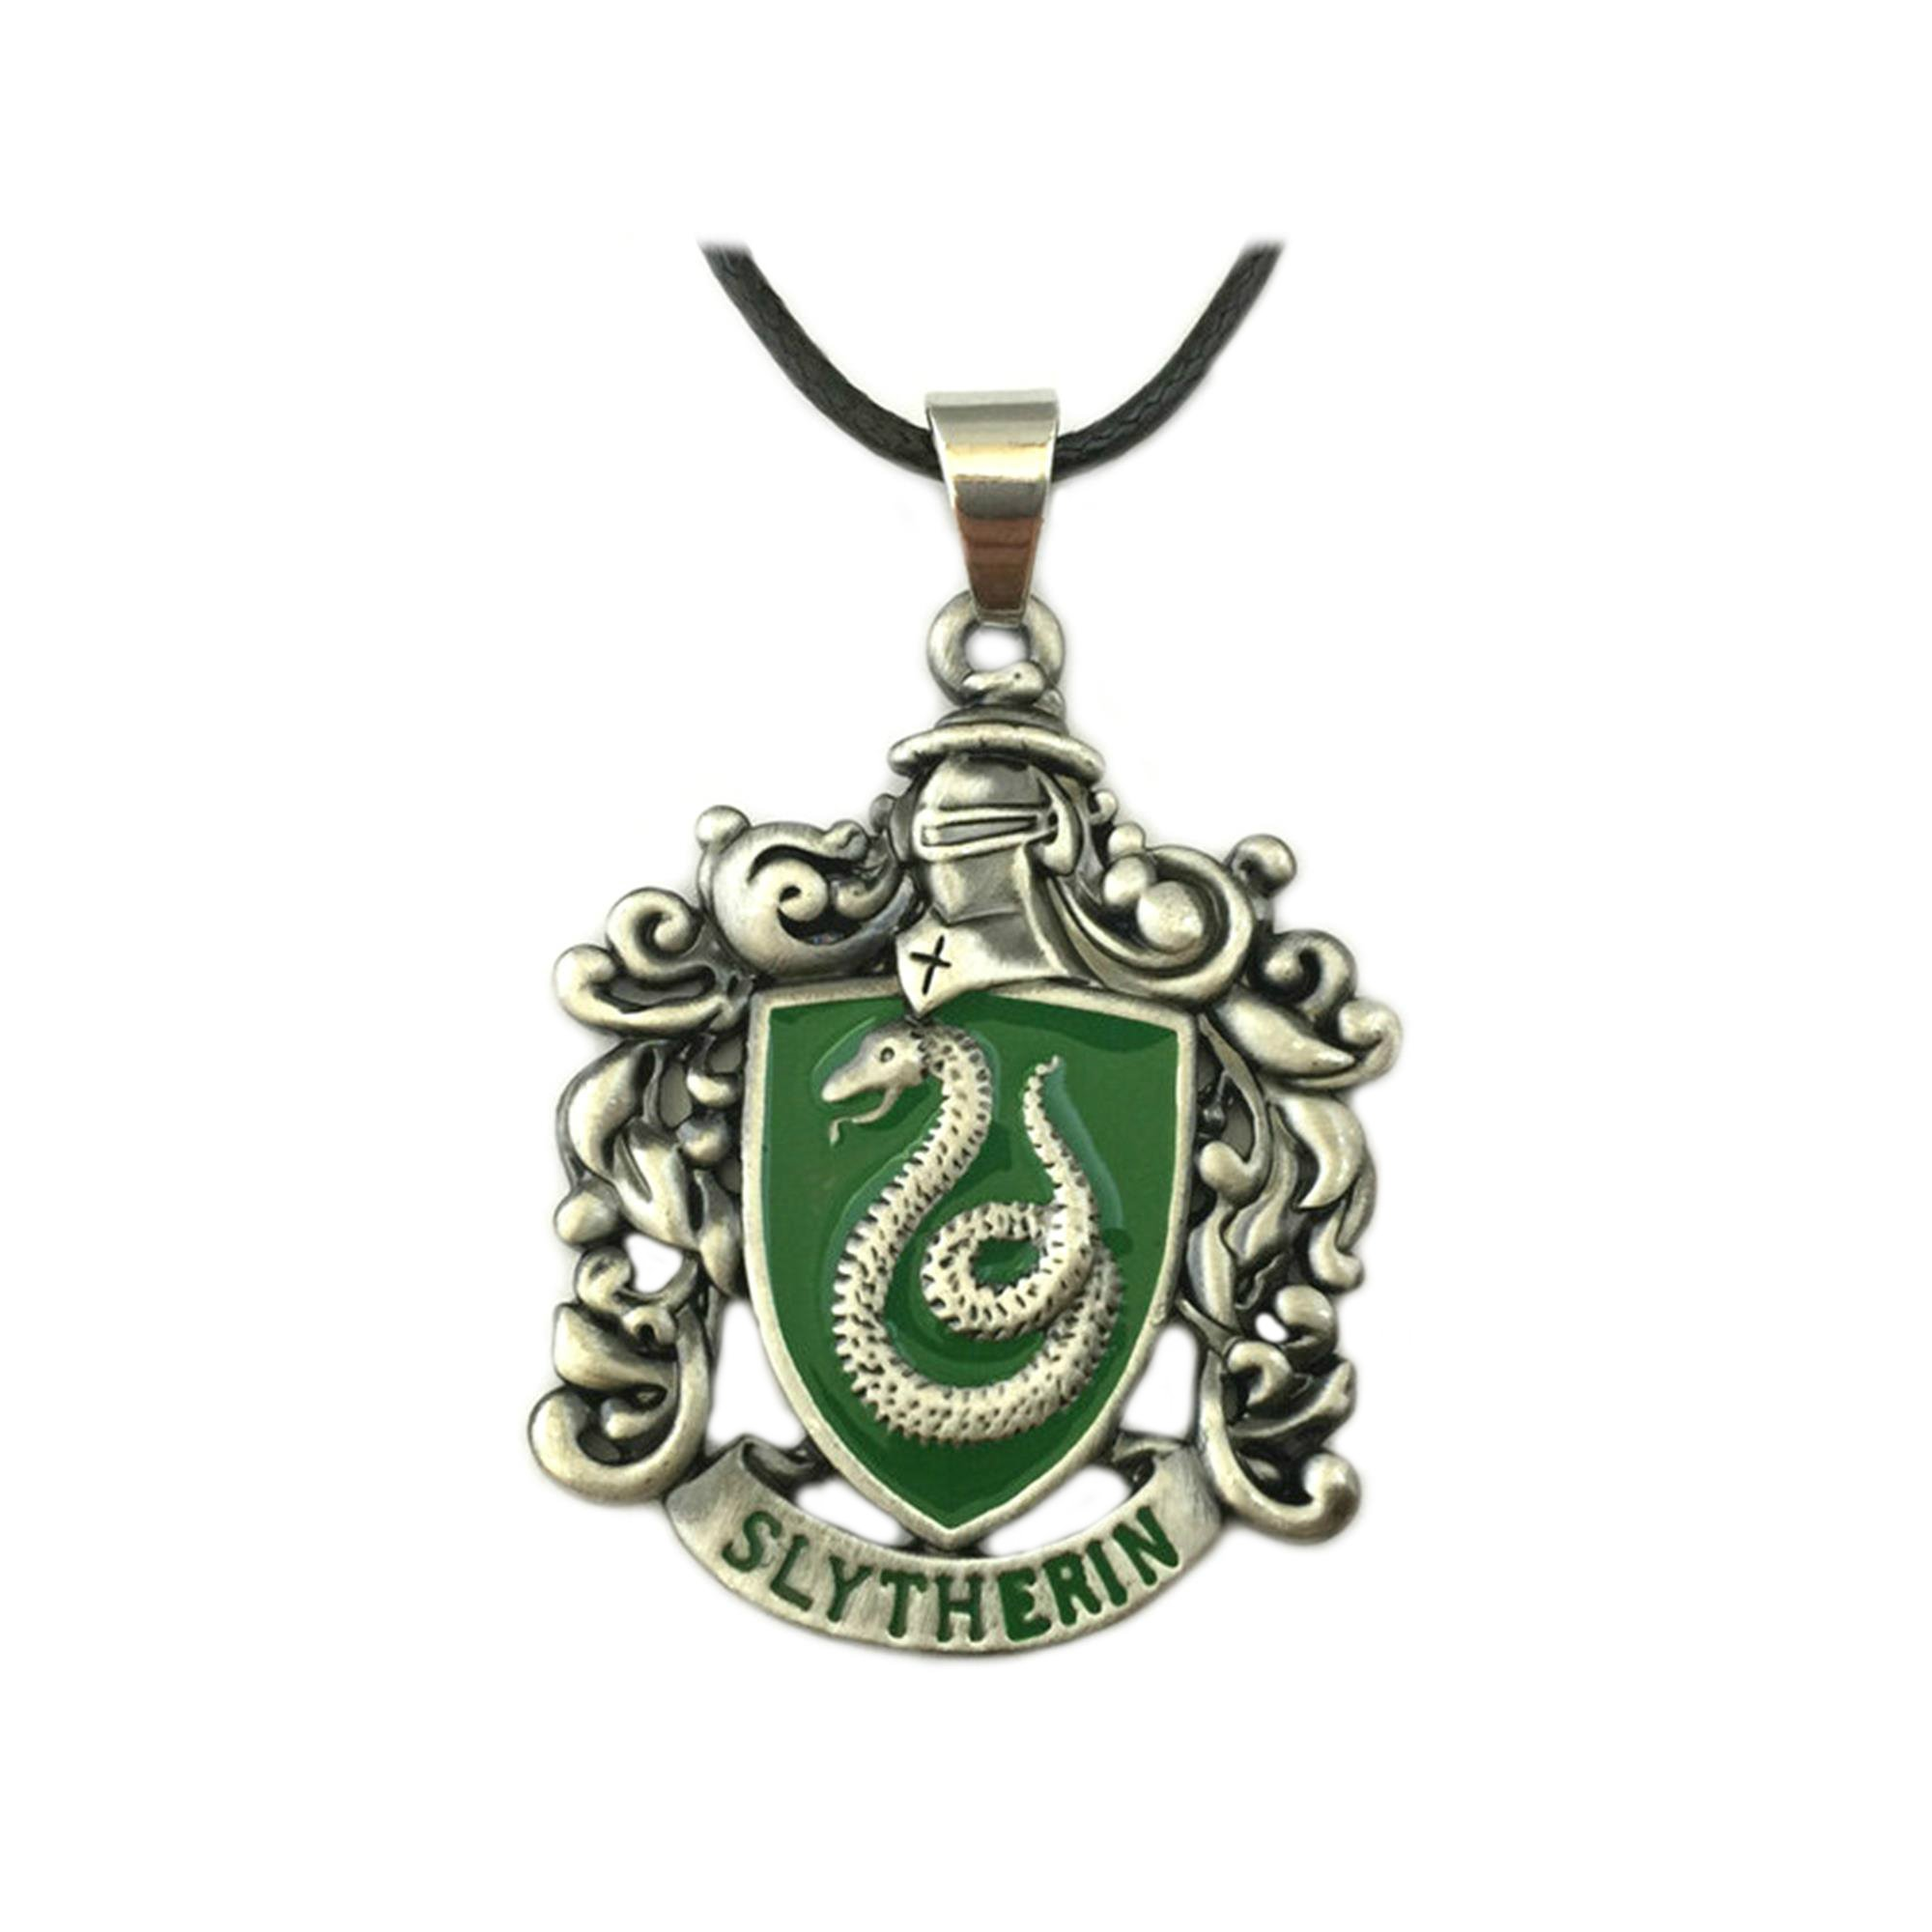 Harry Potter Slytherin House Crest Movie Costume Cosplay Necklace Pendant by Athena Brand